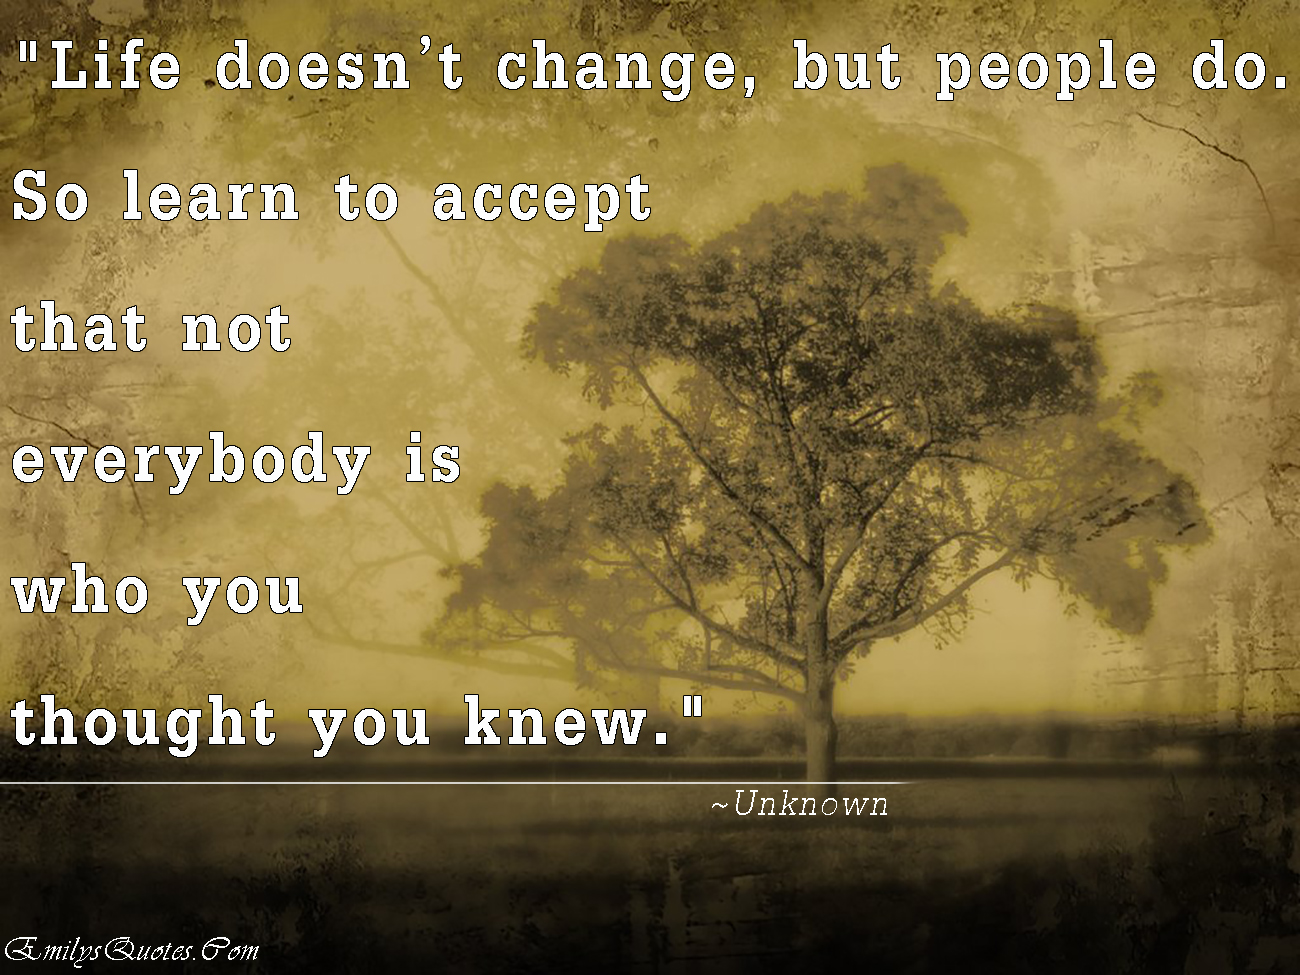 When You Learn To Accept - thisquotes.blogspot.com